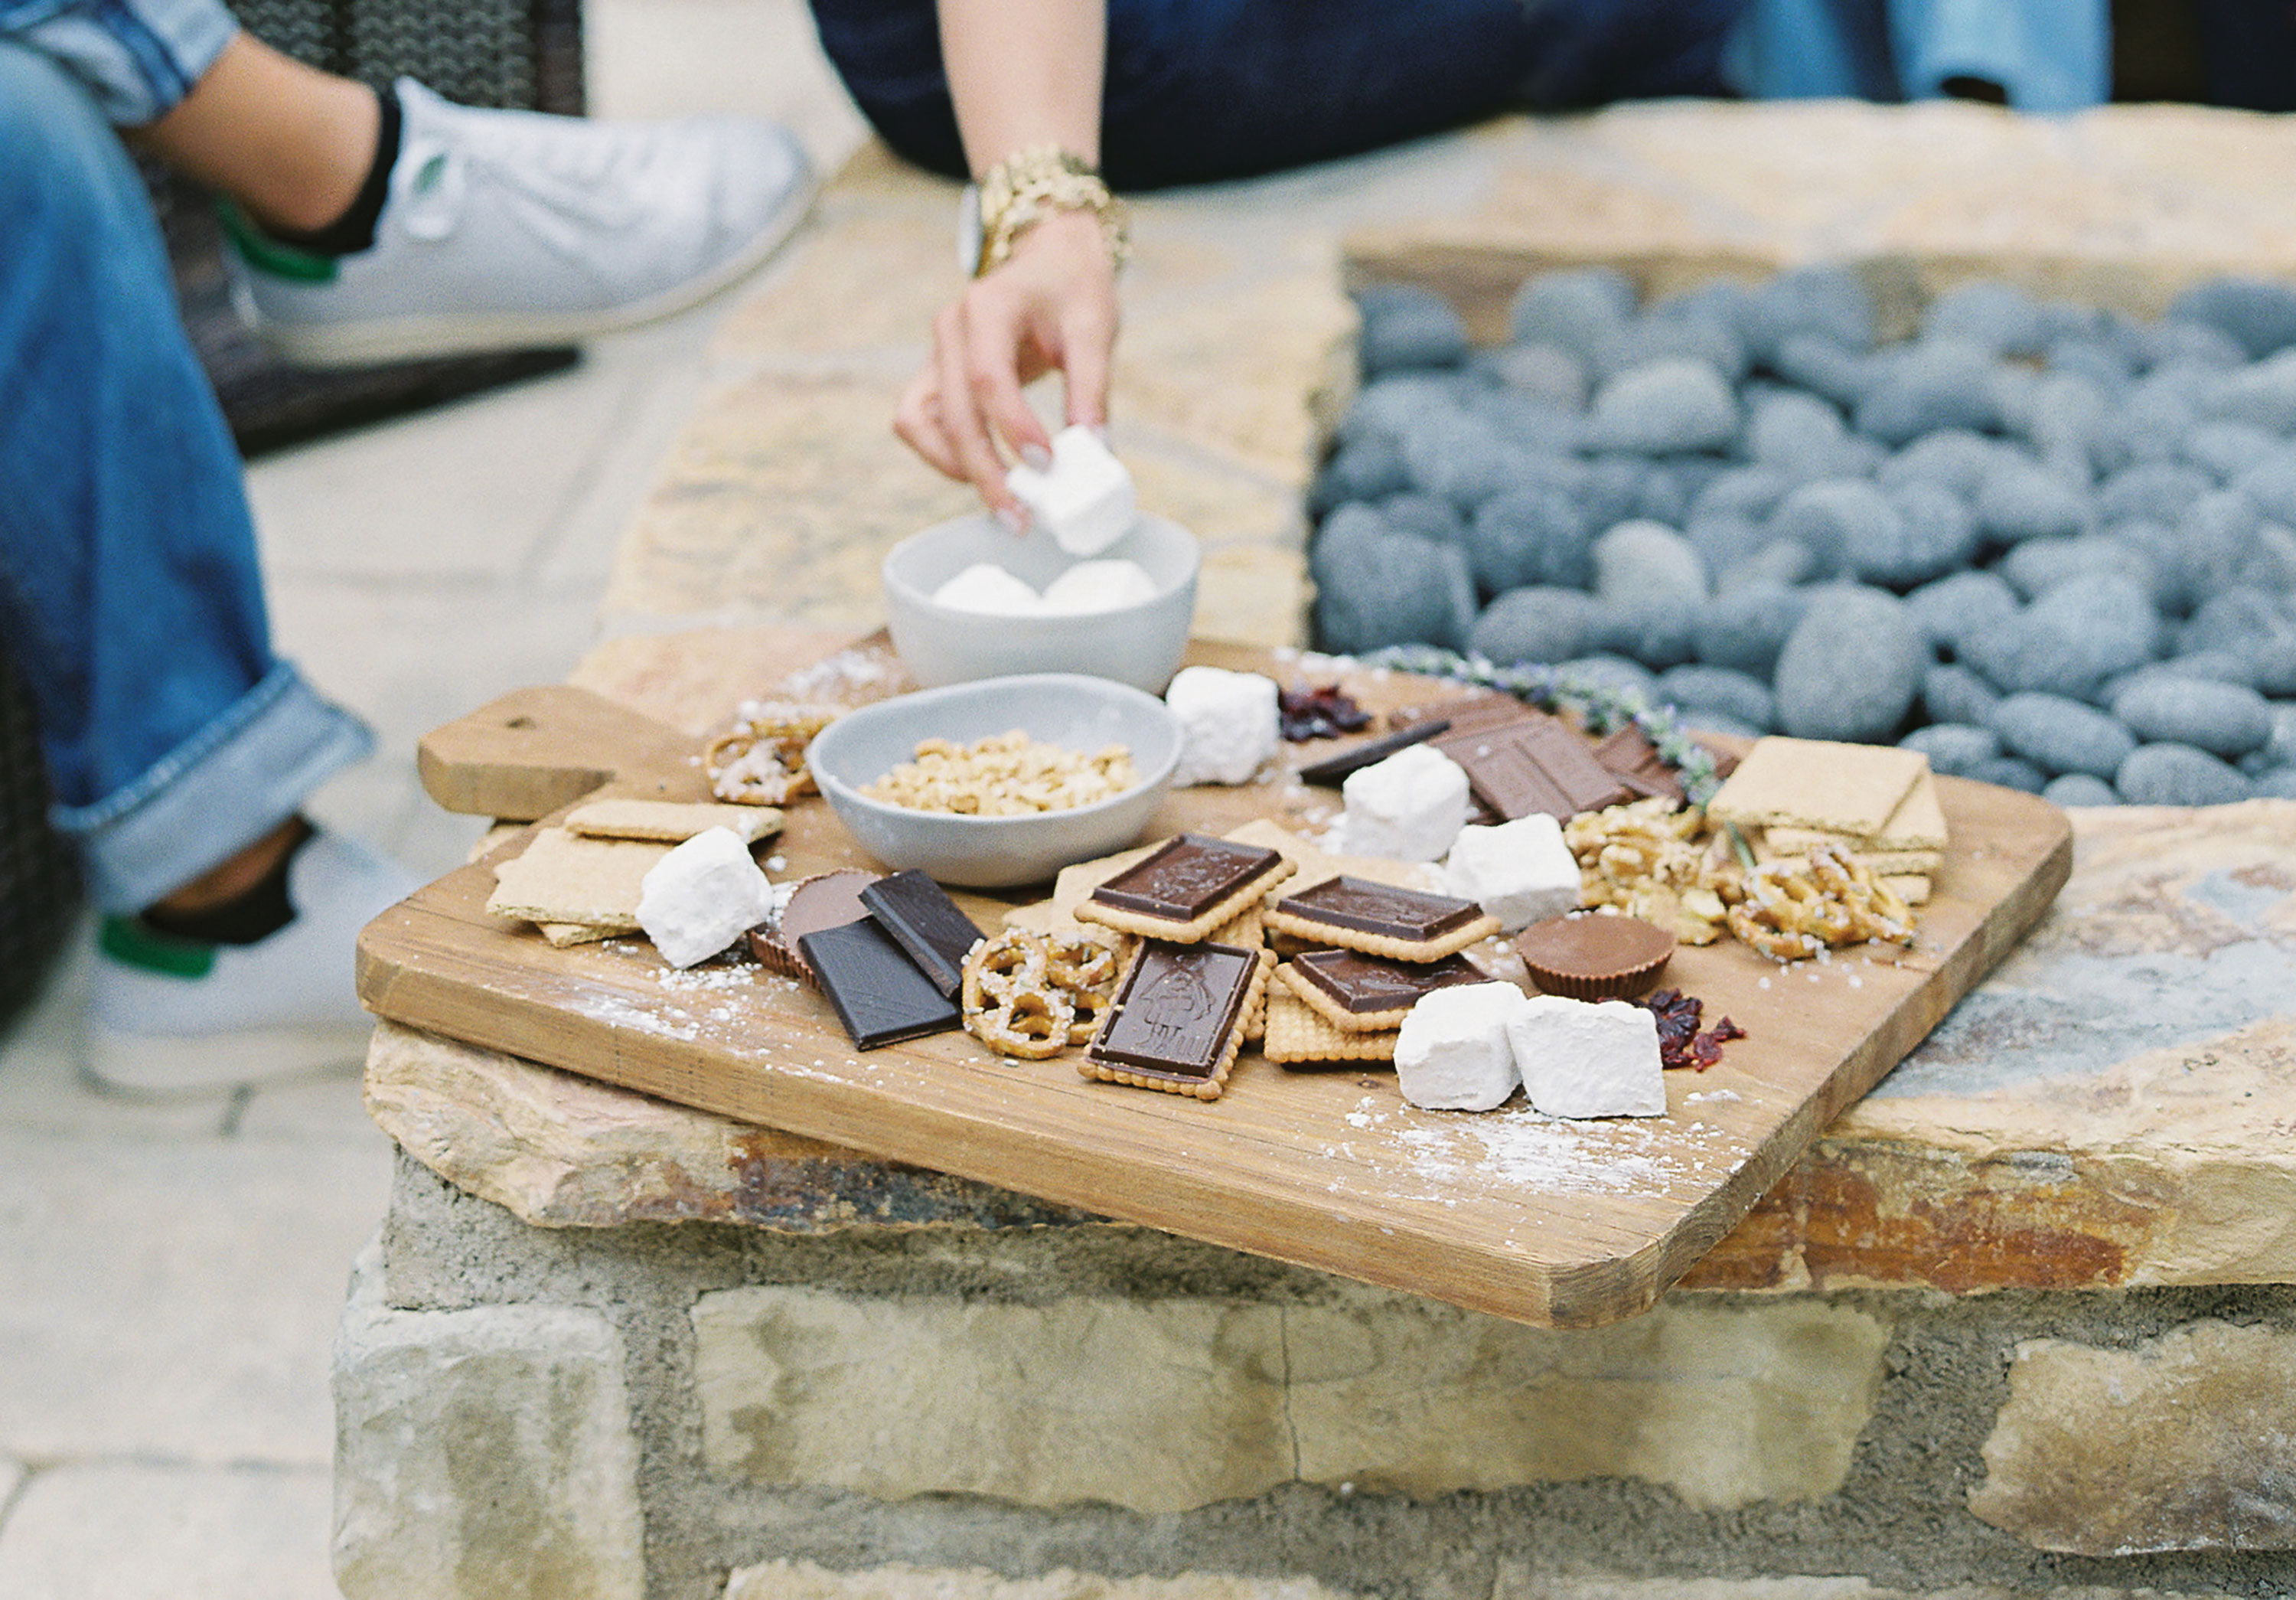 homemade marshmallows recipe smores bar s'mores board